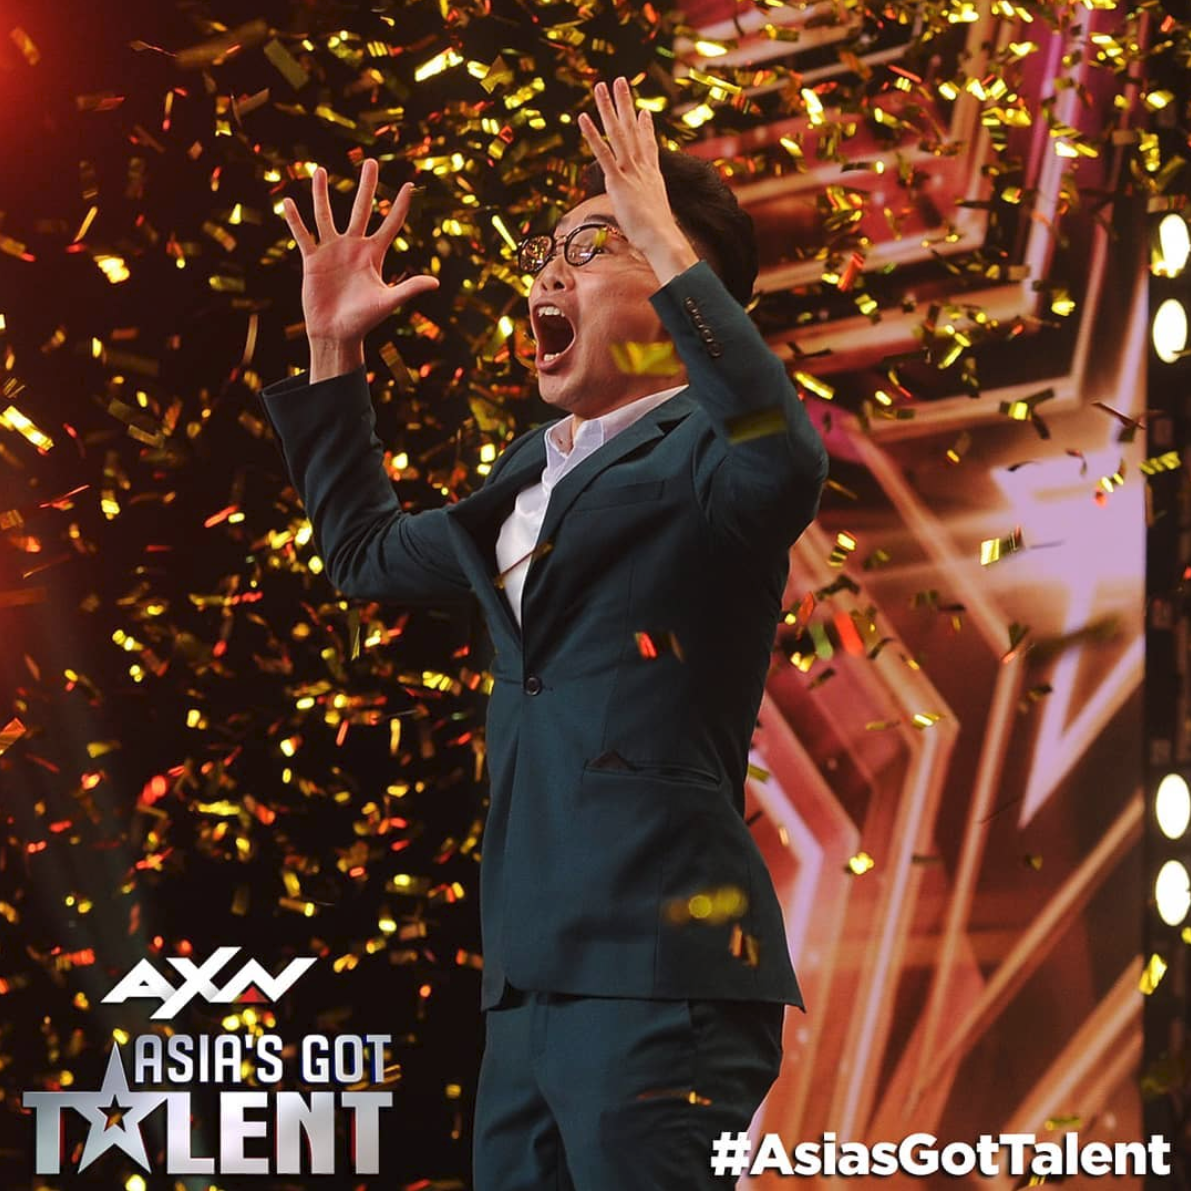 Singapore's Golden Buzzer Magician